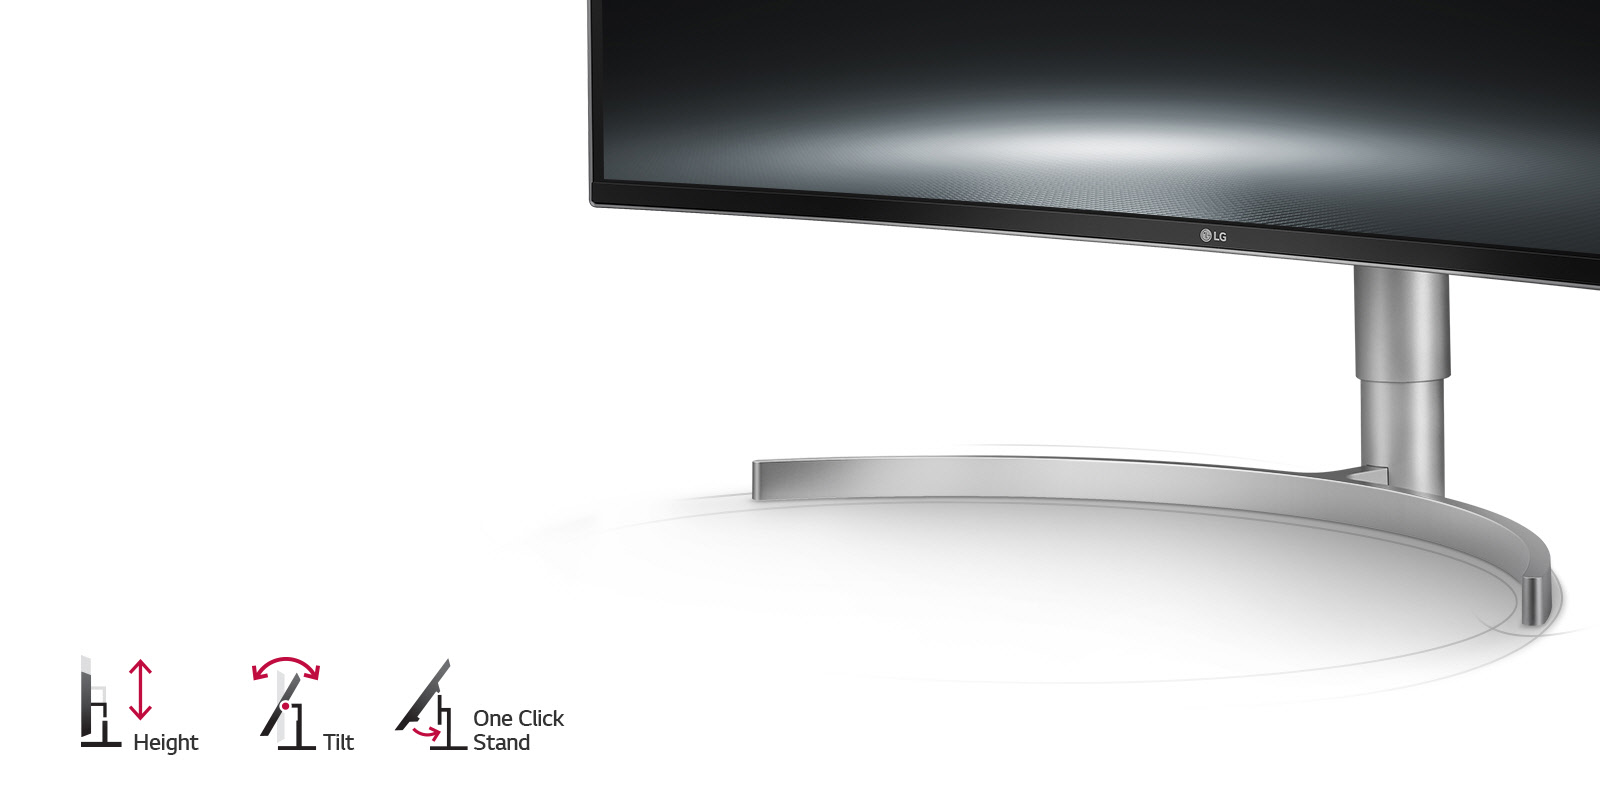 LG 38WK95C-W monitor stand closeup to the right of icons and text showing height, tilt and one-click stand adjustments